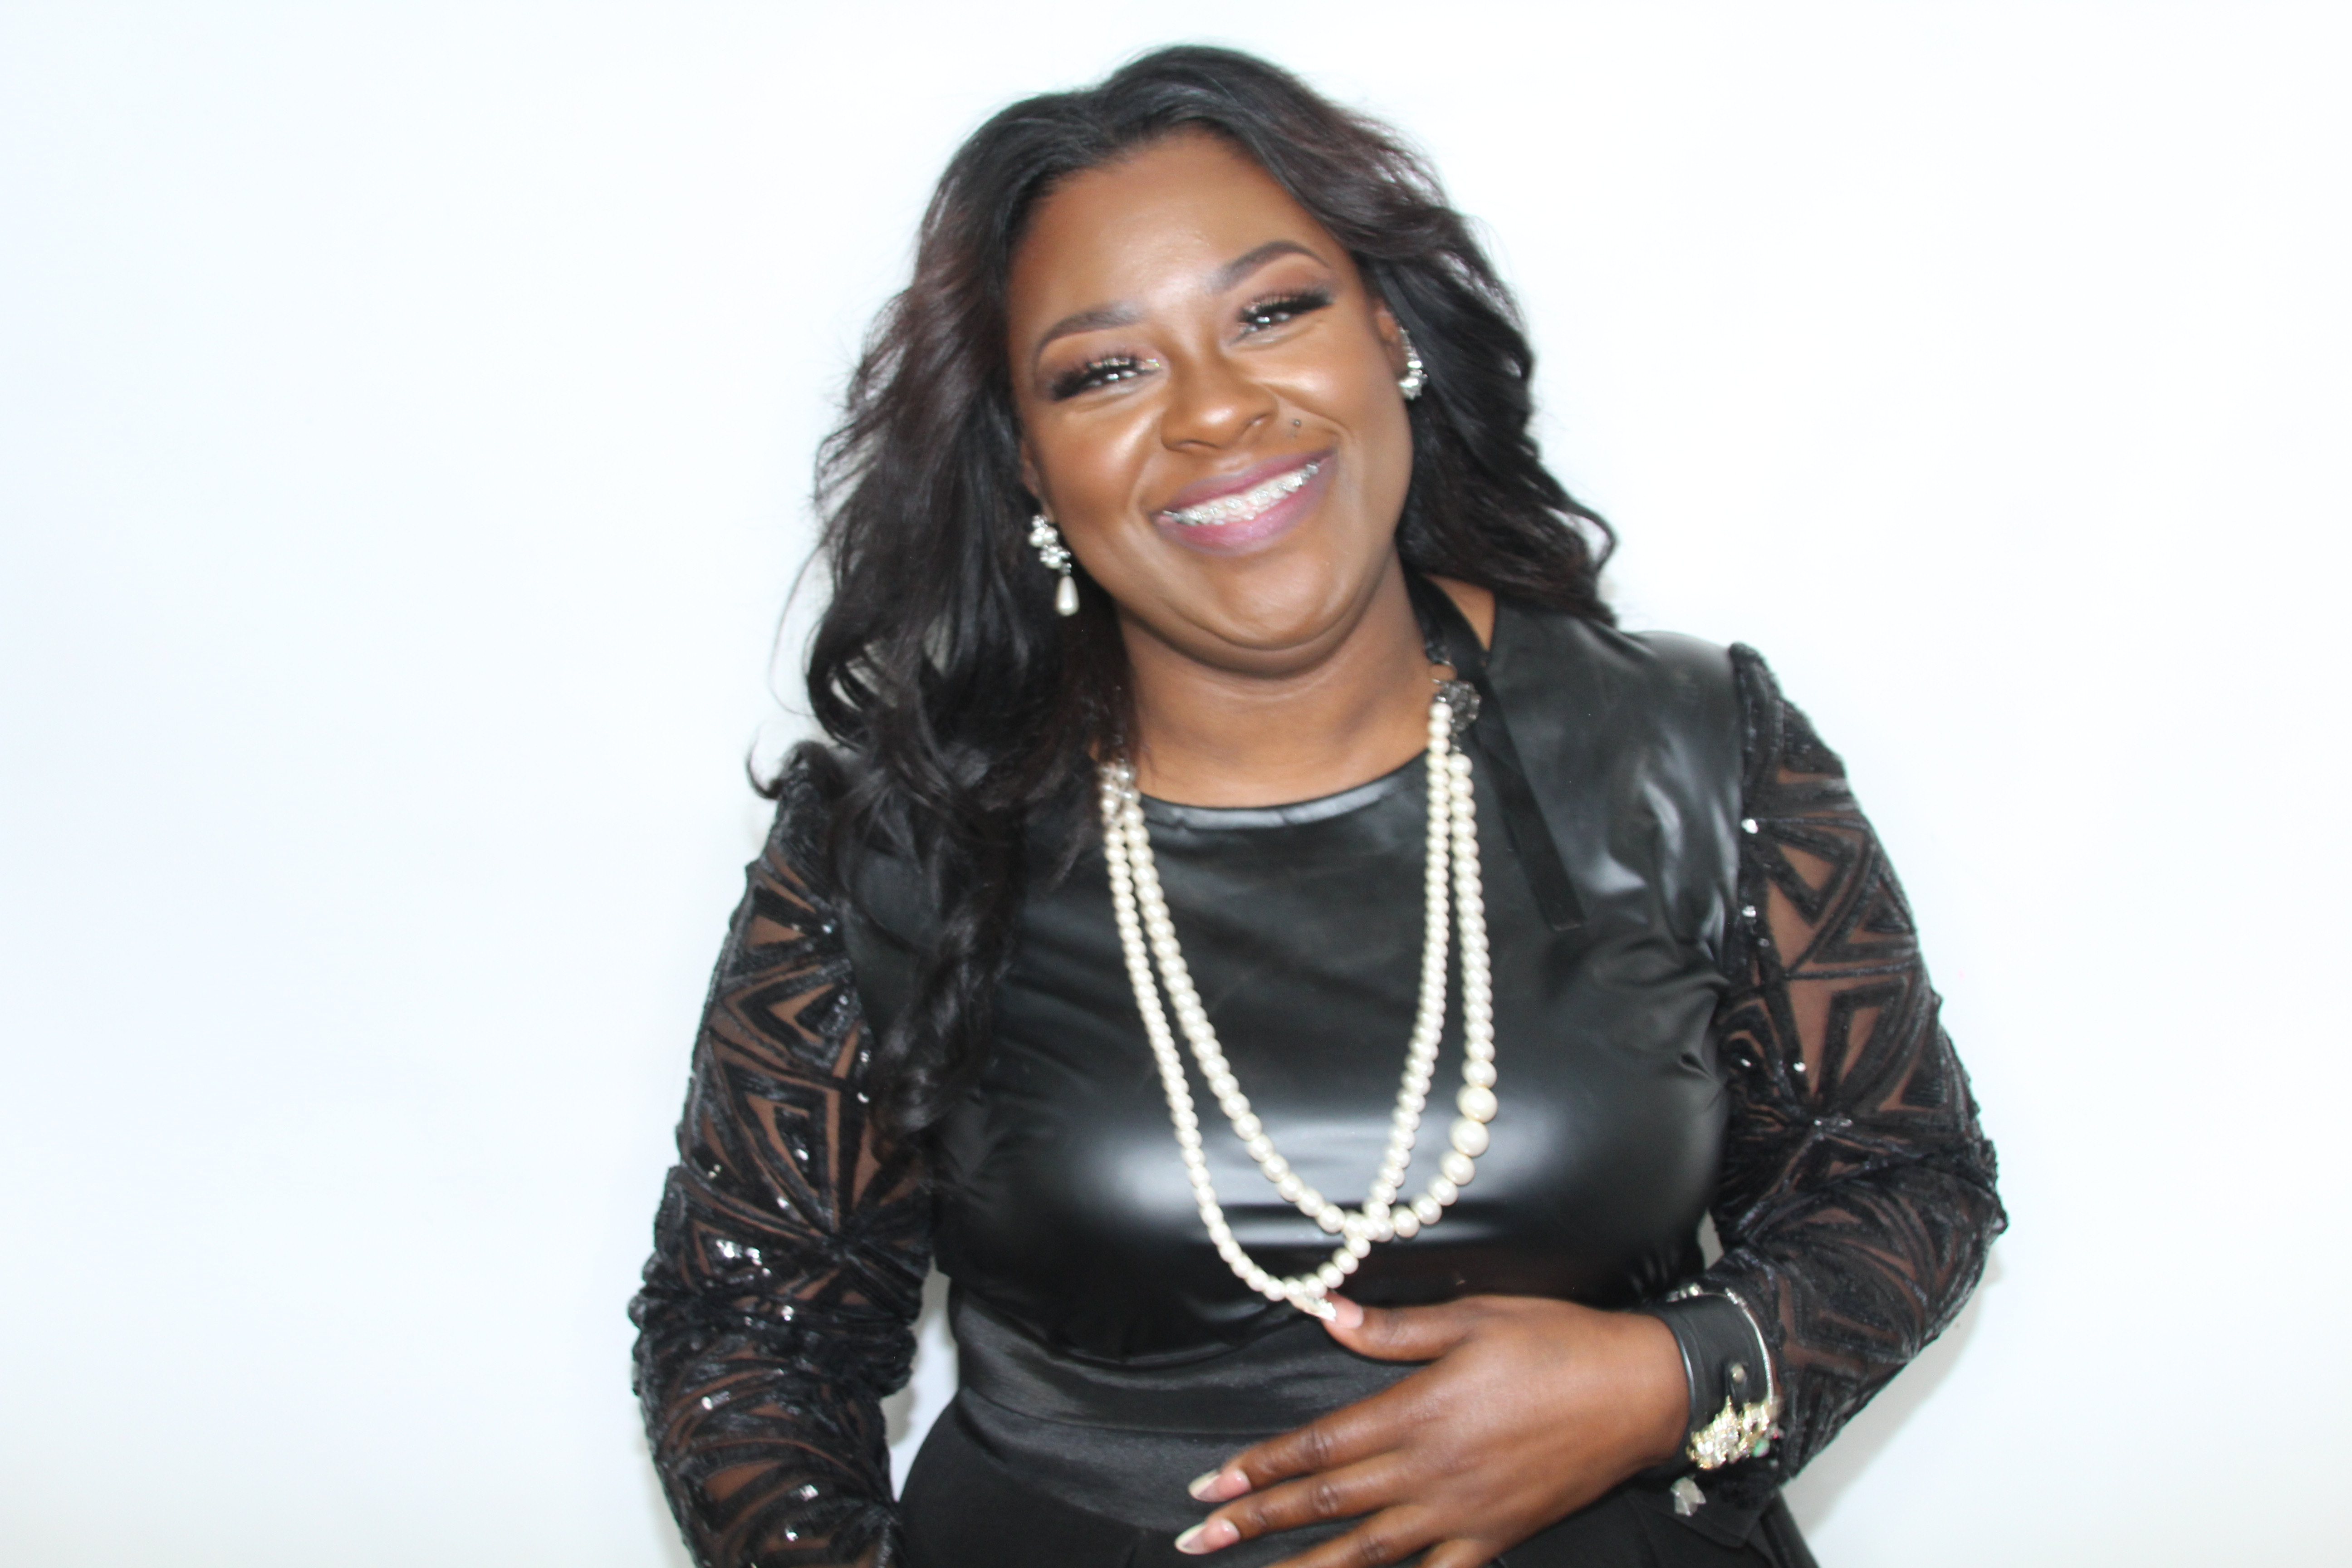 Life Coach Taisha Nichole Empowers People with A Complete Makeover to Lead More Purposeful Lives